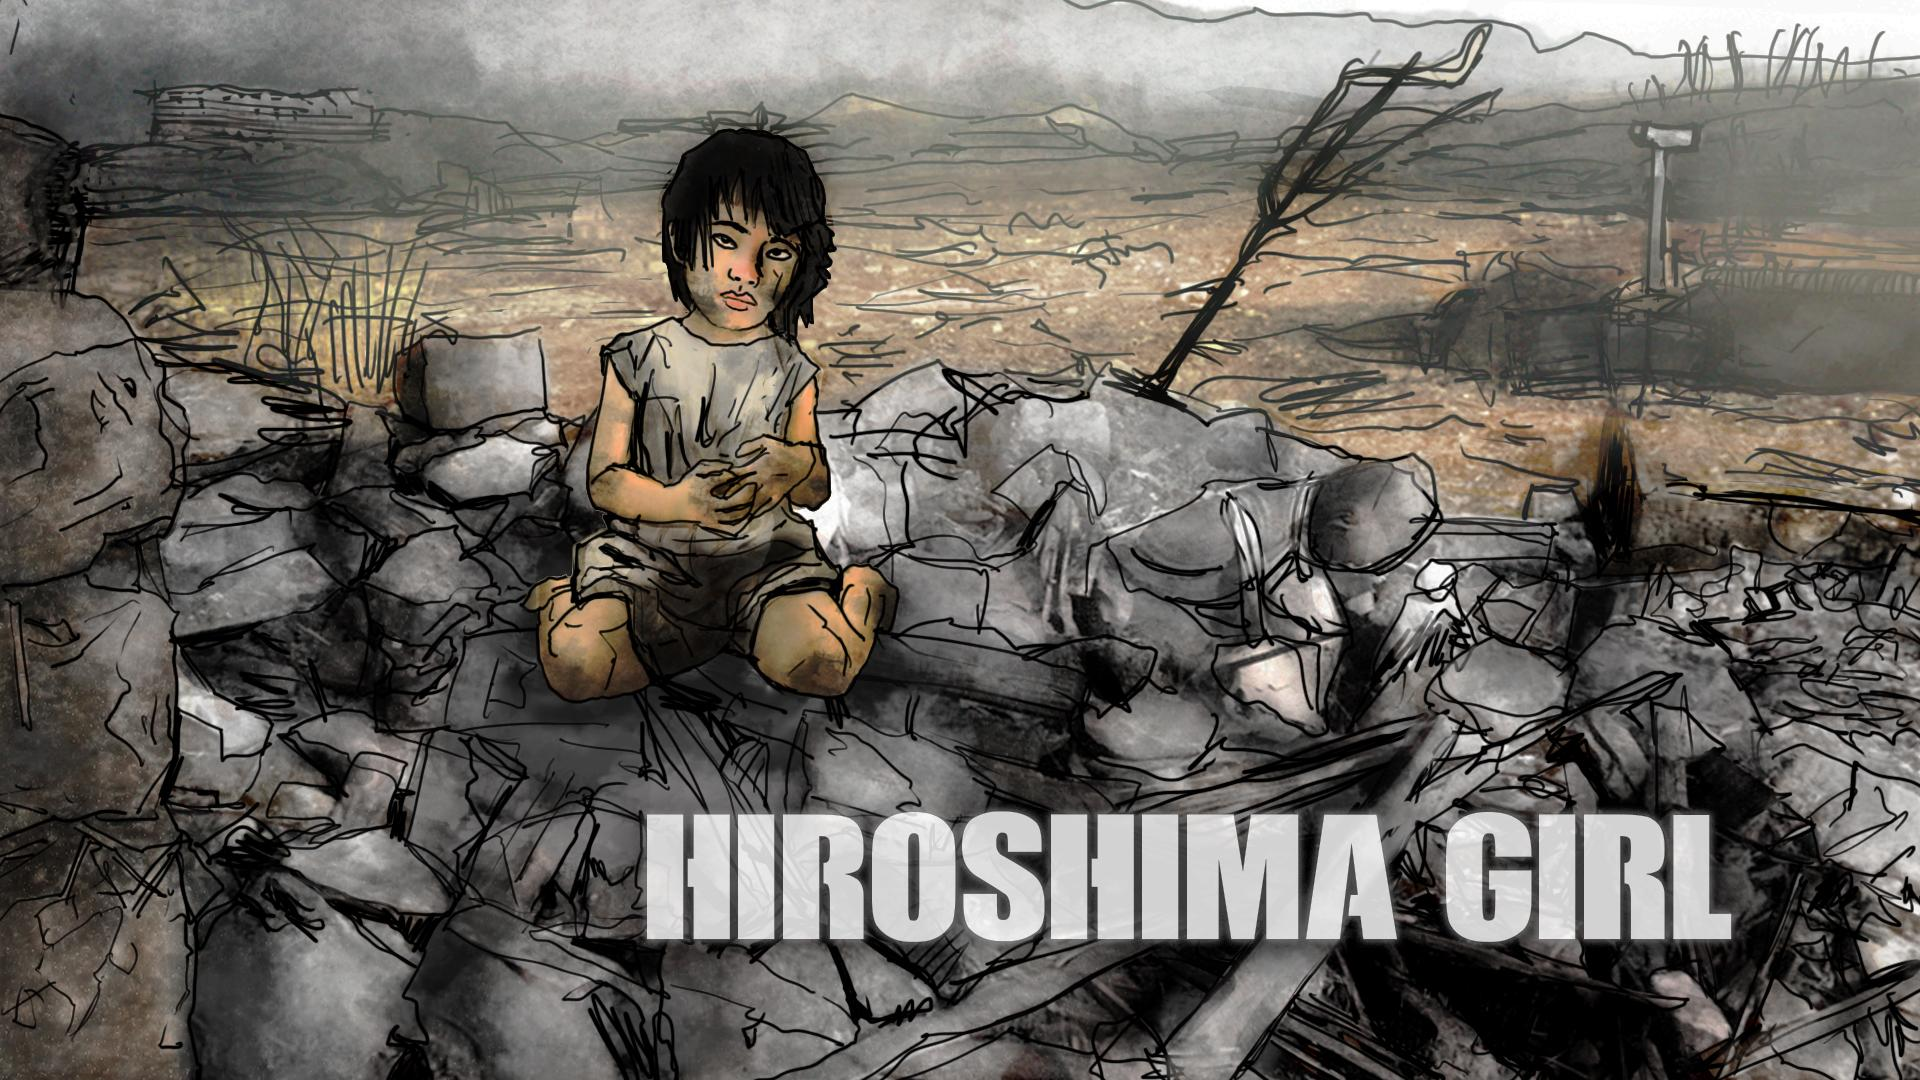 Hiroshima Girl: Illustration by Etienne Cipriani